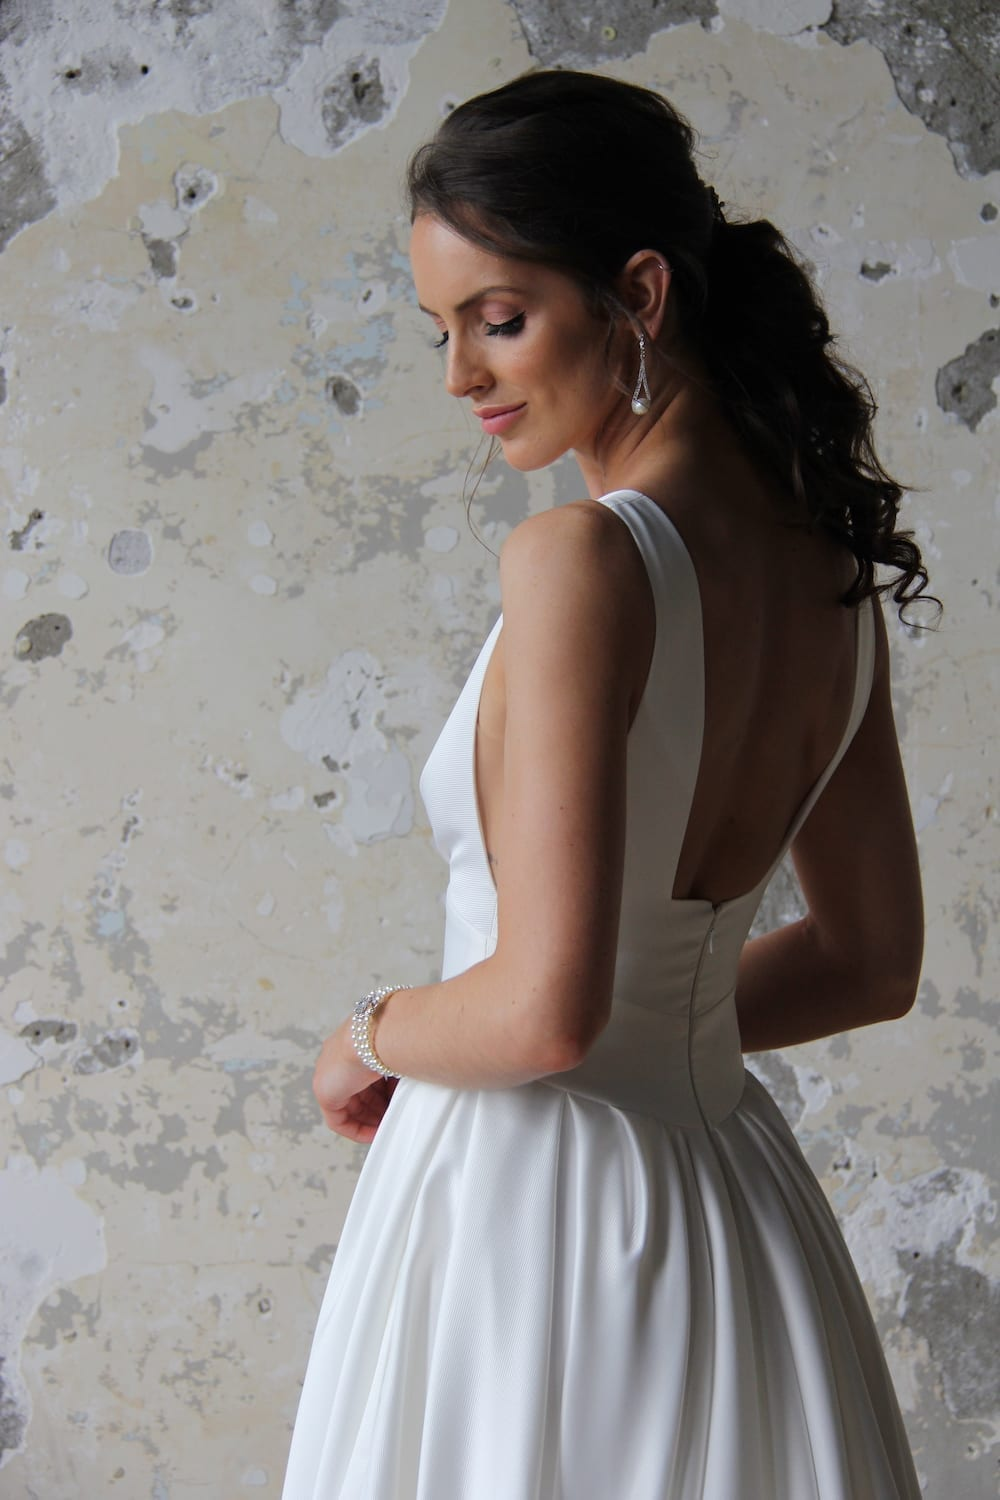 Female model wearing Vinka Design Modern Muse Wedding Dress. In chic warehouse the back detail of a gown with plunging v-neckline, Clean, sharp lines and skirt with deep pleated folds and pockets.